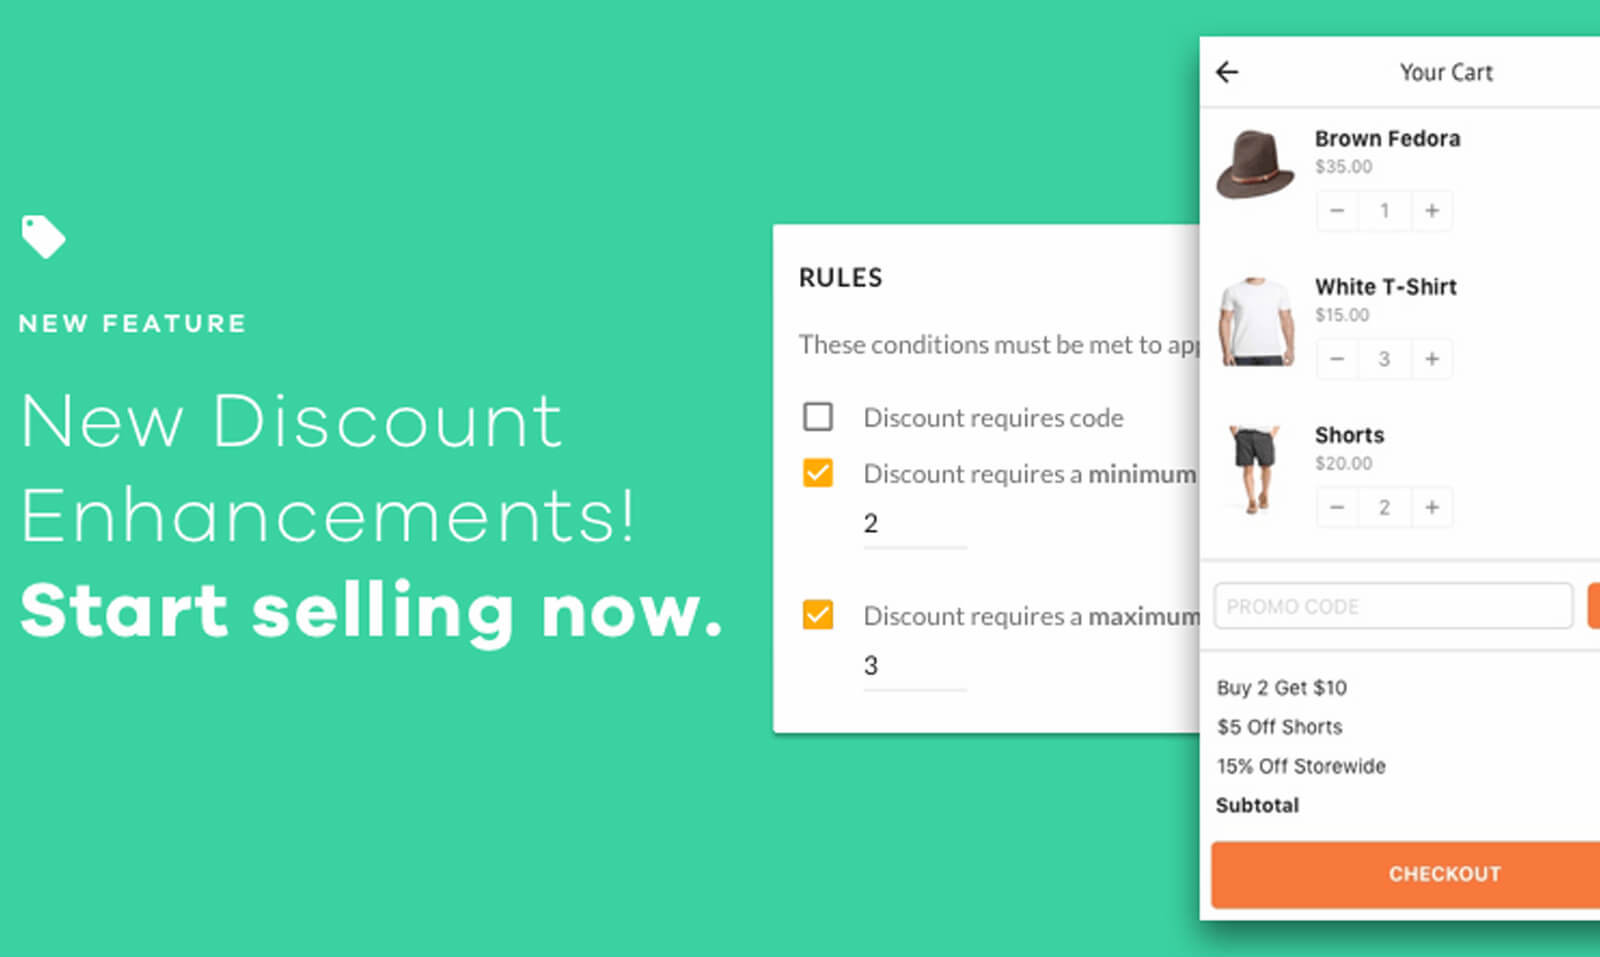 New V2 Features: Discounts Enhancements, AVS Check, Flagged Orders, Bulk Order Processing